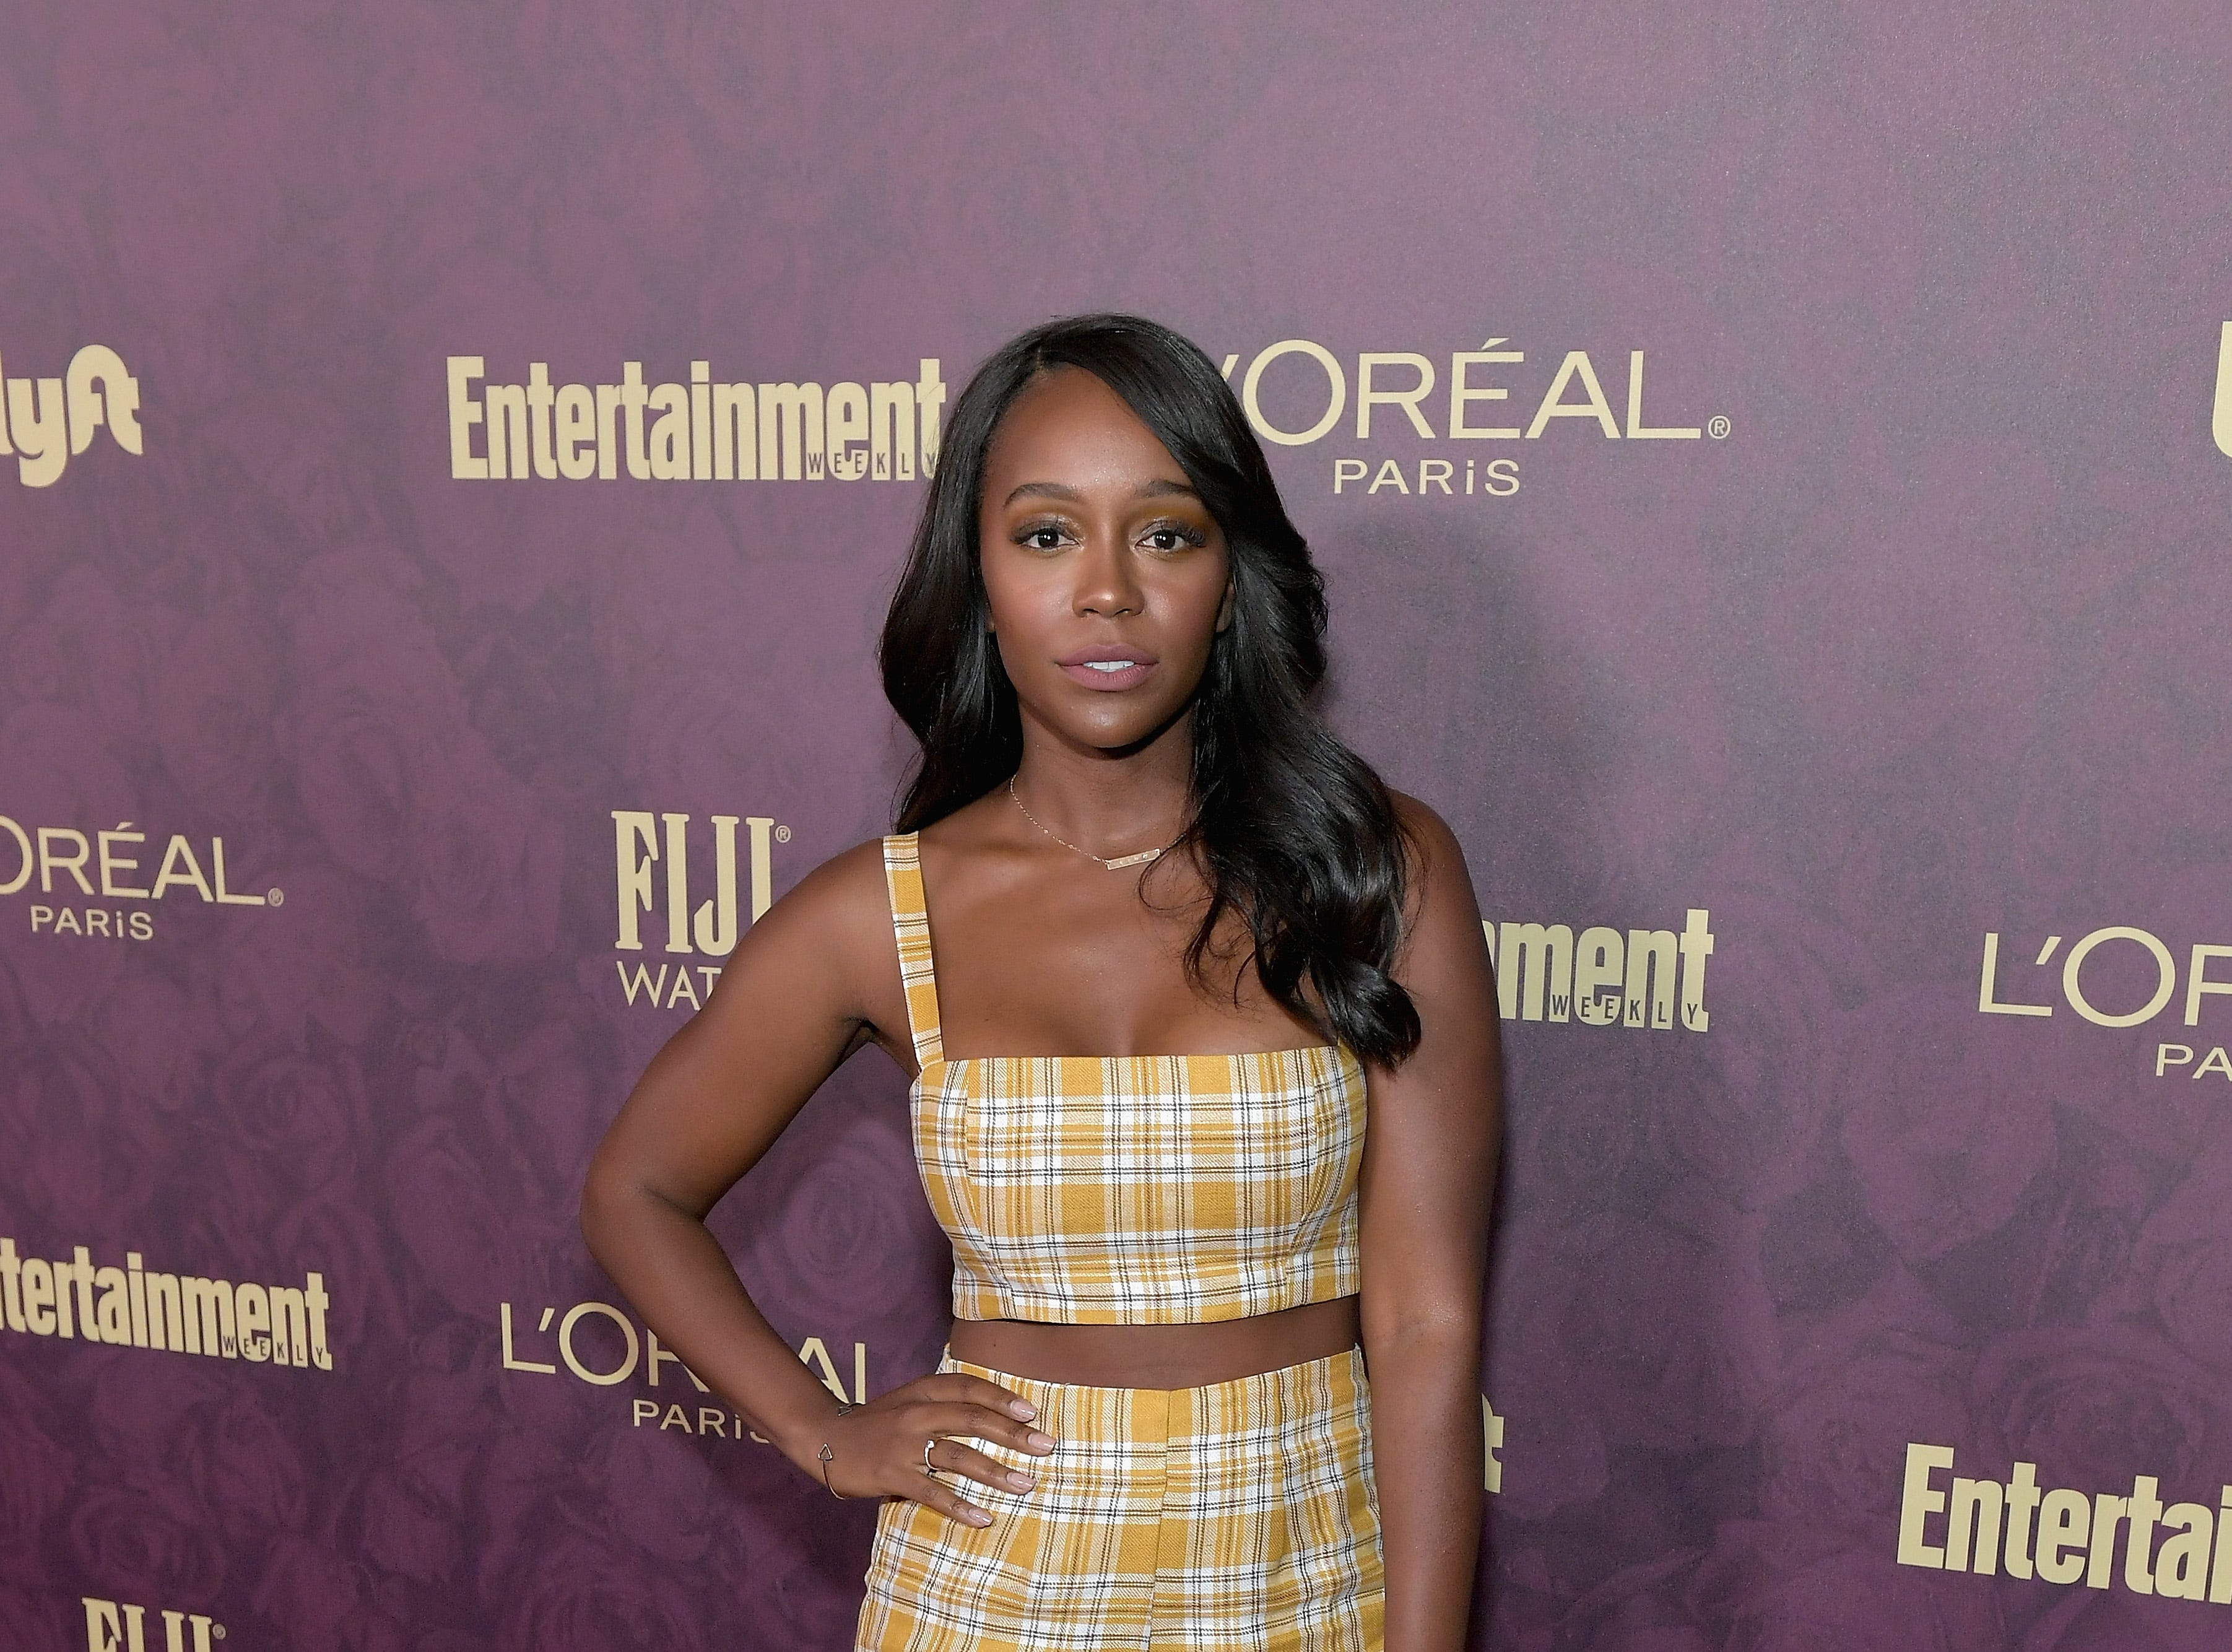 LOS ANGELES, CA - SEPTEMBER 15:  Aja Naomi King attends the 2018 Pre-Emmy Party hosted by Entertainment Weekly and L'Oreal Paris at Sunset Tower on September 15, 2018 in Los Angeles, California.  (Photo by Neilson Barnard/Getty Images for Entertainment Weekly) ORG XMIT: 775214113 ORIG FILE ID: 1034005128